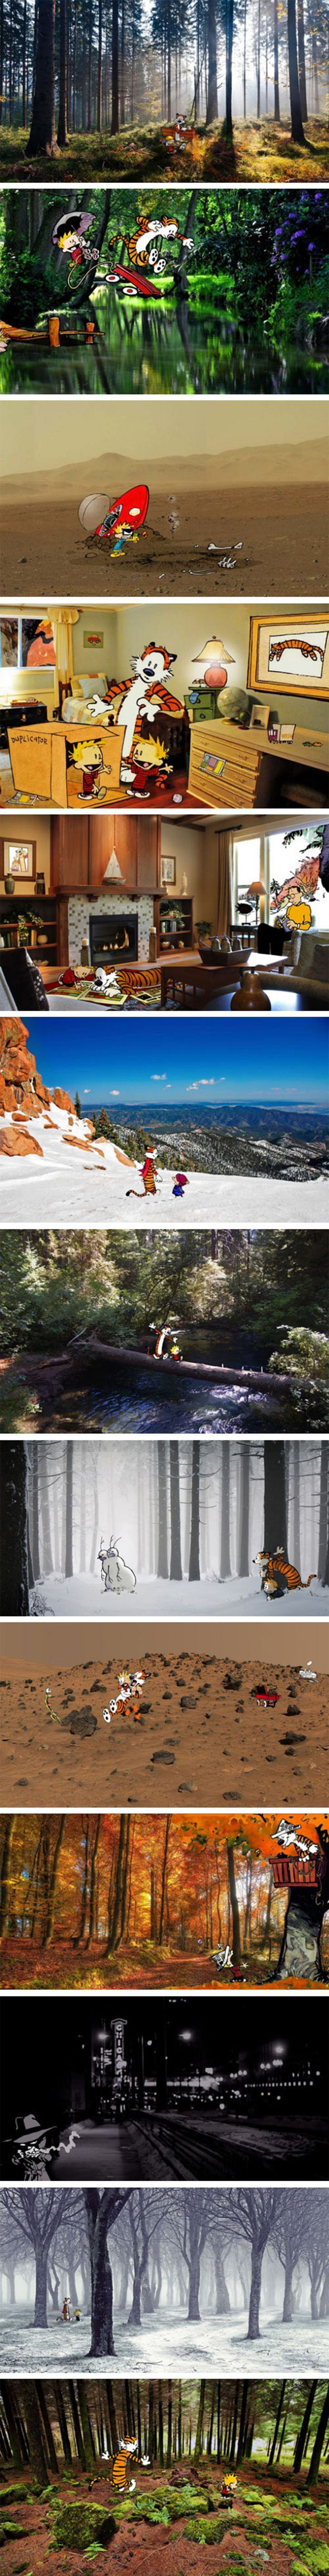 Calvin and Hobbes In Real Locations<<<<< This tickled me in all of my happy childhood spots :))